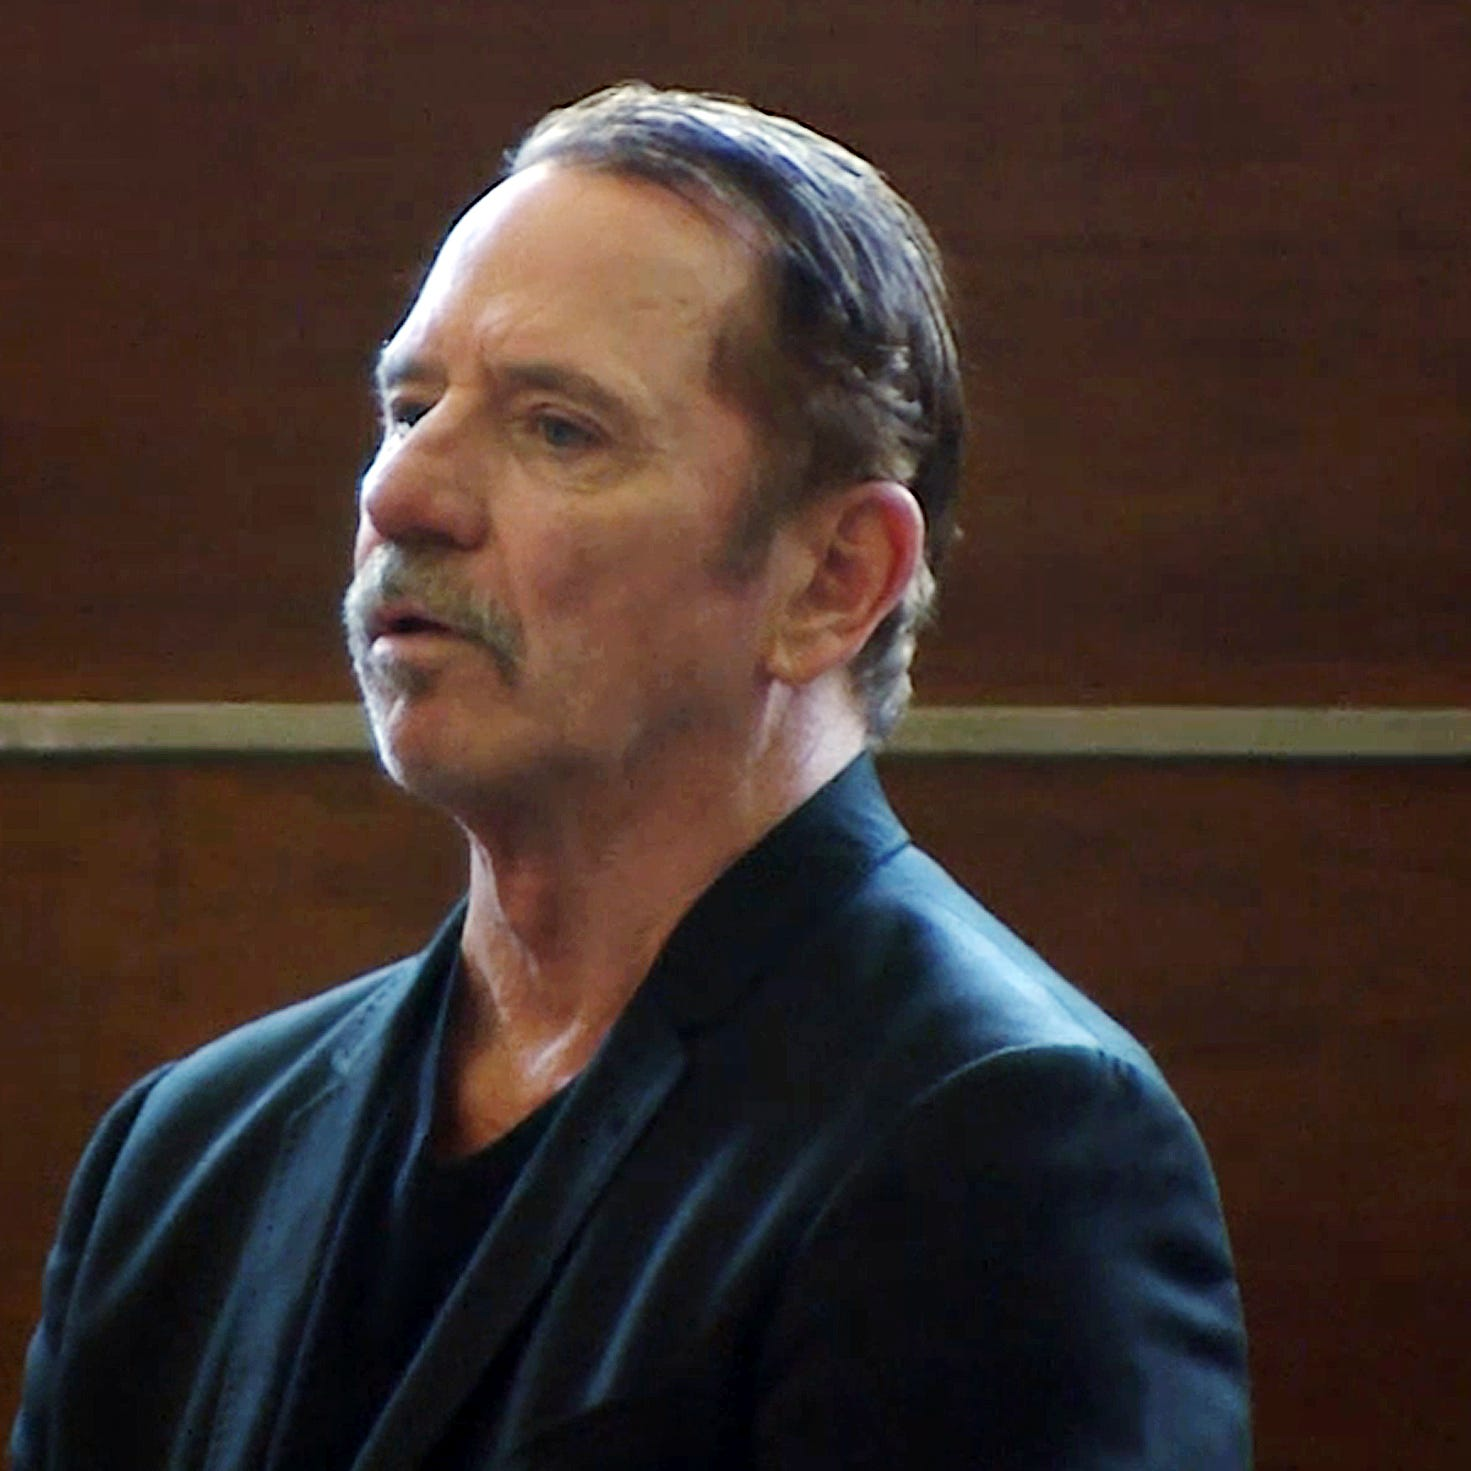 Former 'Dukes' star Tom Wopat pleads guilty to 'annoying, accosting' women, gets probation